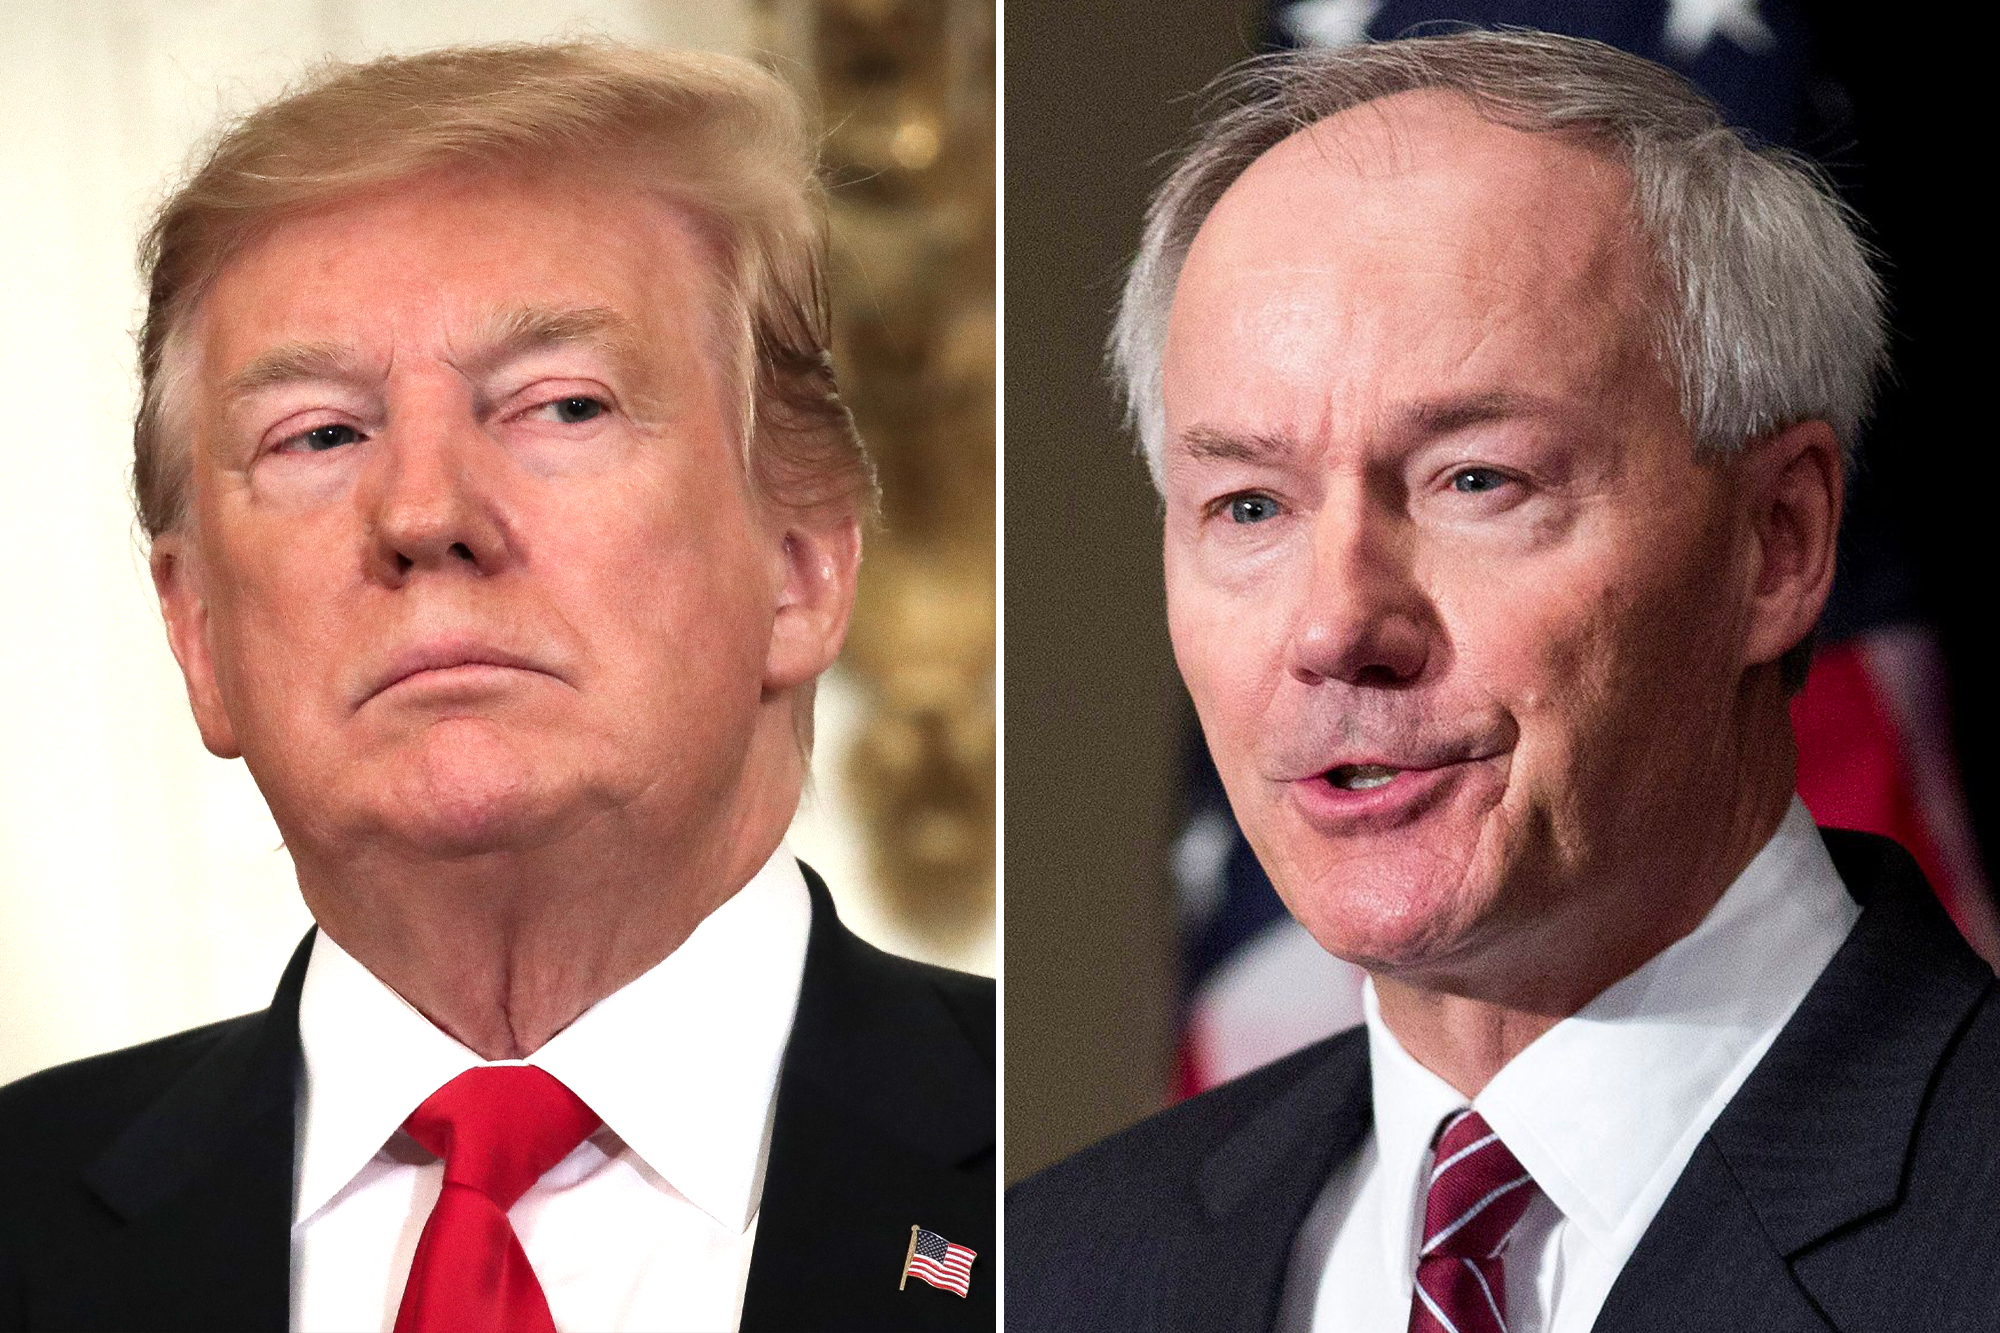 Trump Criticizes Arkansas Gov. Asa Hutchinson for Vetoing Bill That Bans Gender Reassignment Surgery or Medical Treatment for Minors